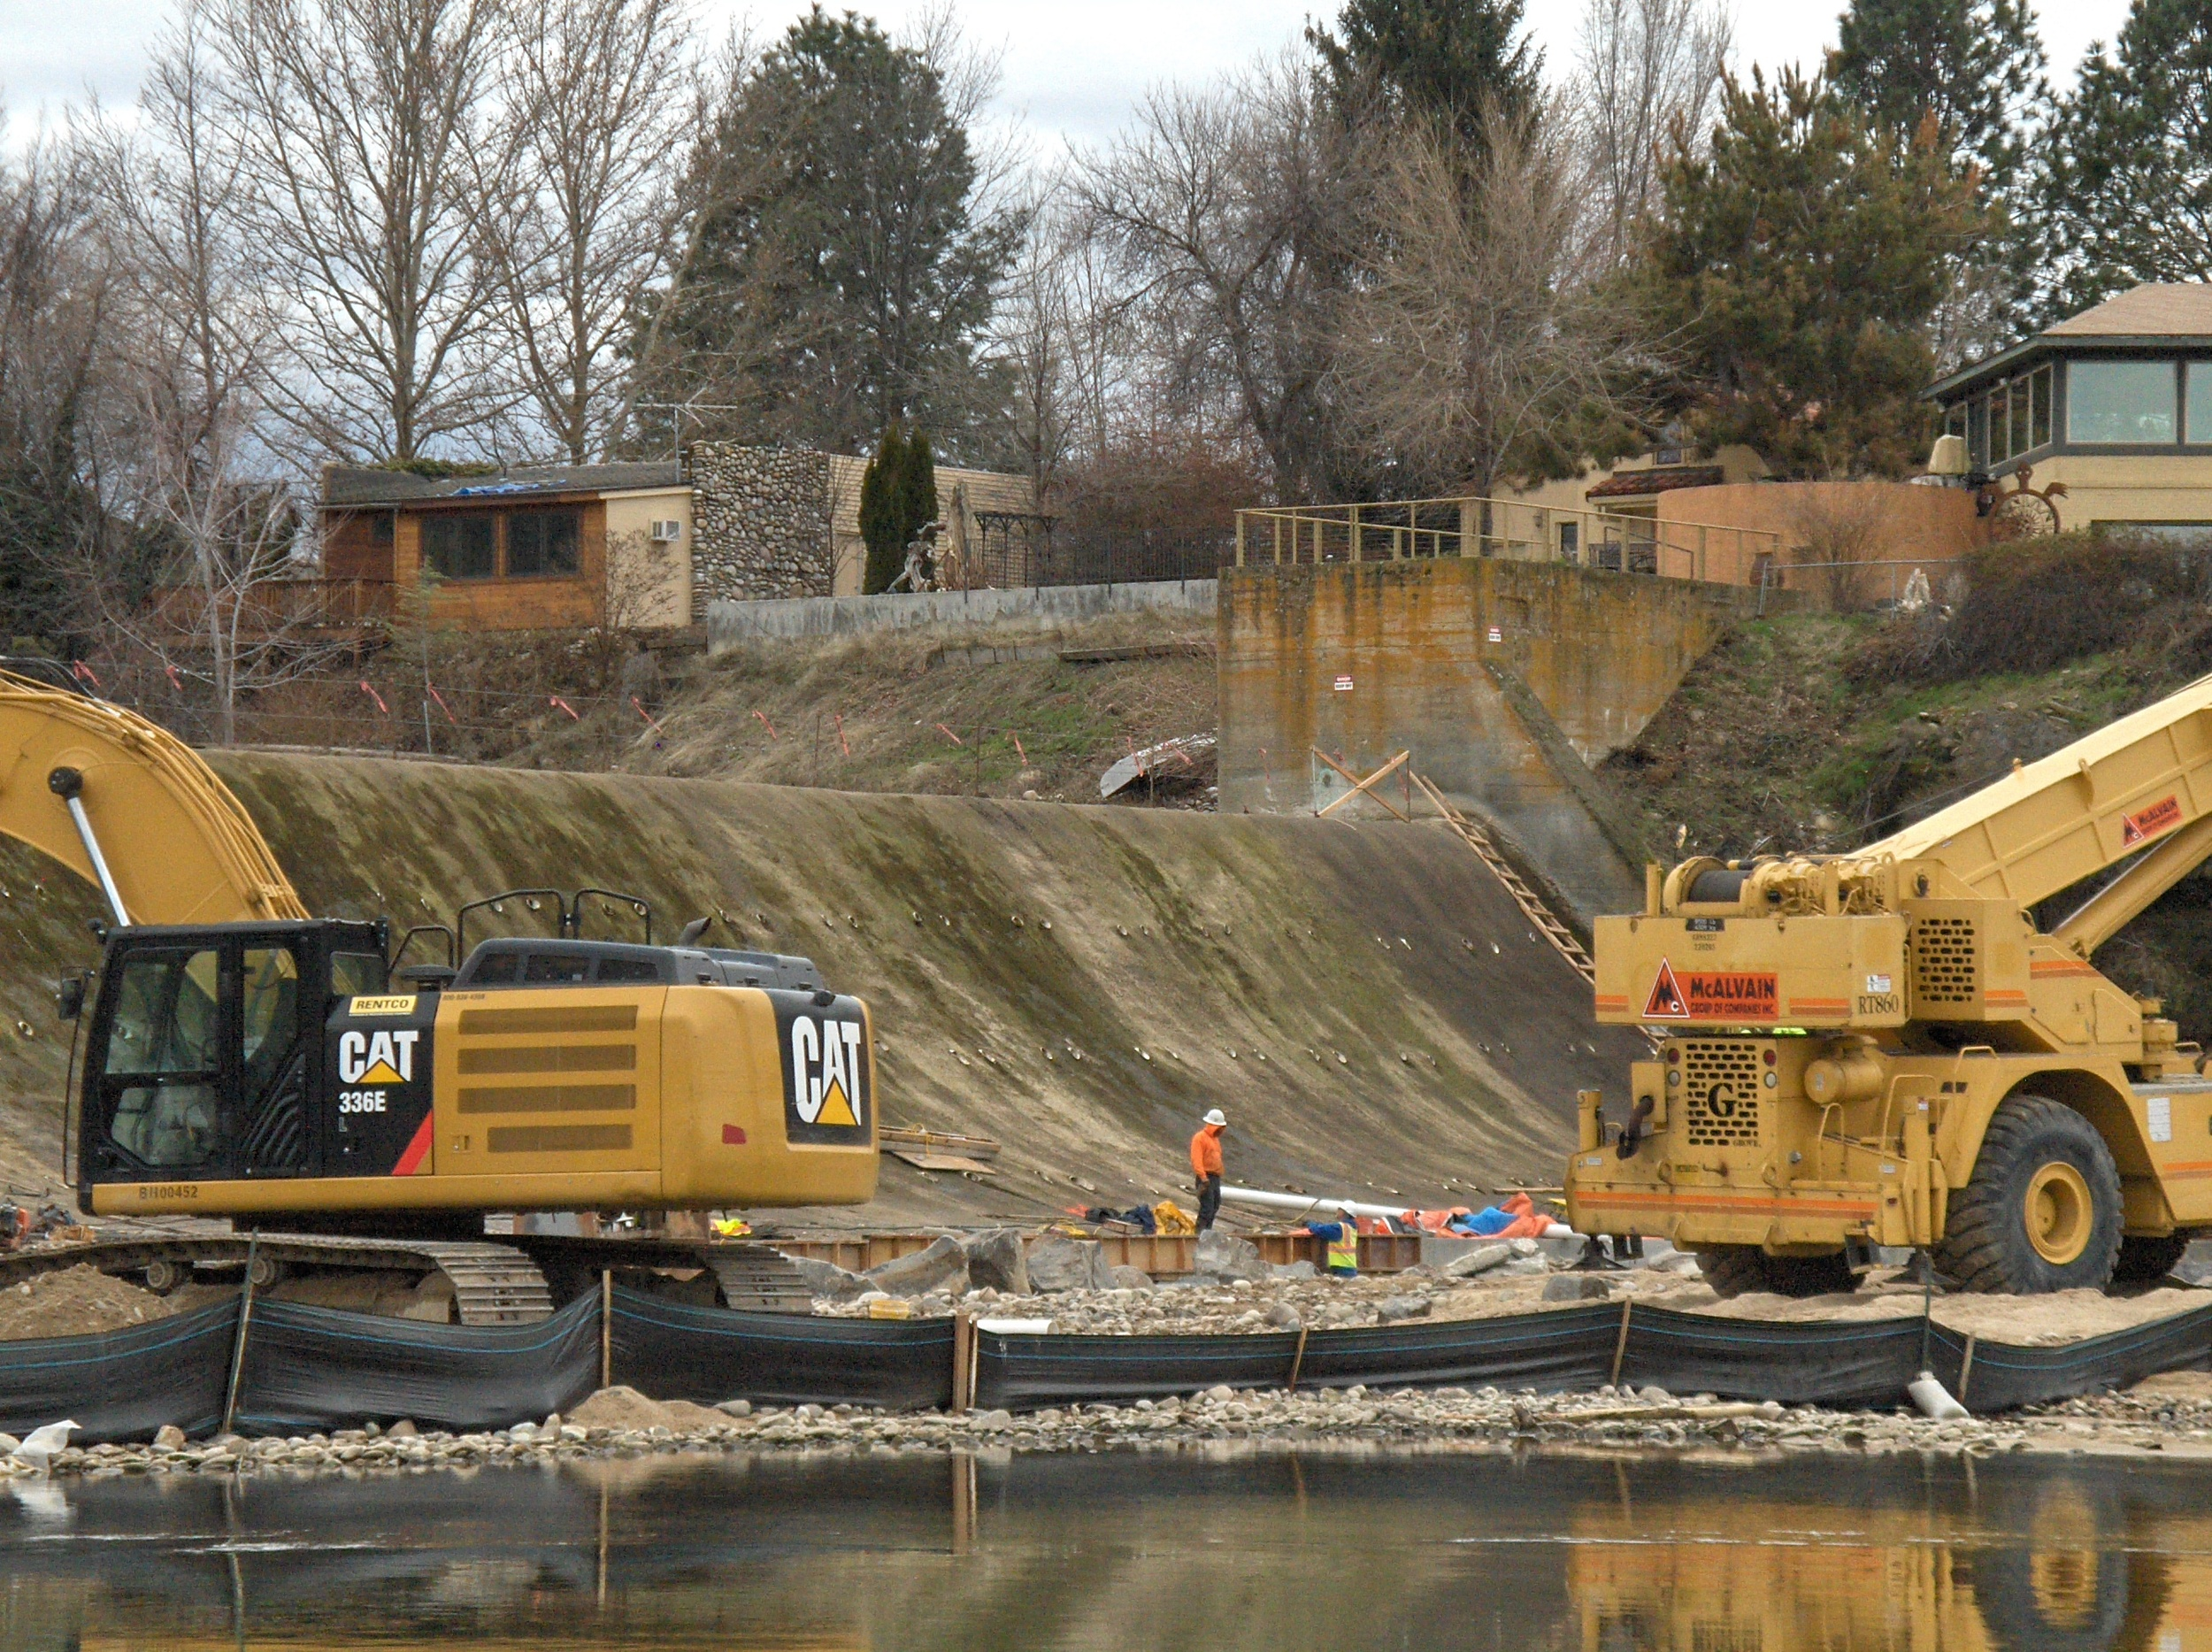 Barber Dam on the Boise River is undergoing repairs, which in part contributed to the complete dewatering of the Boise River Feb. 4. (Photo by Liz Paul)